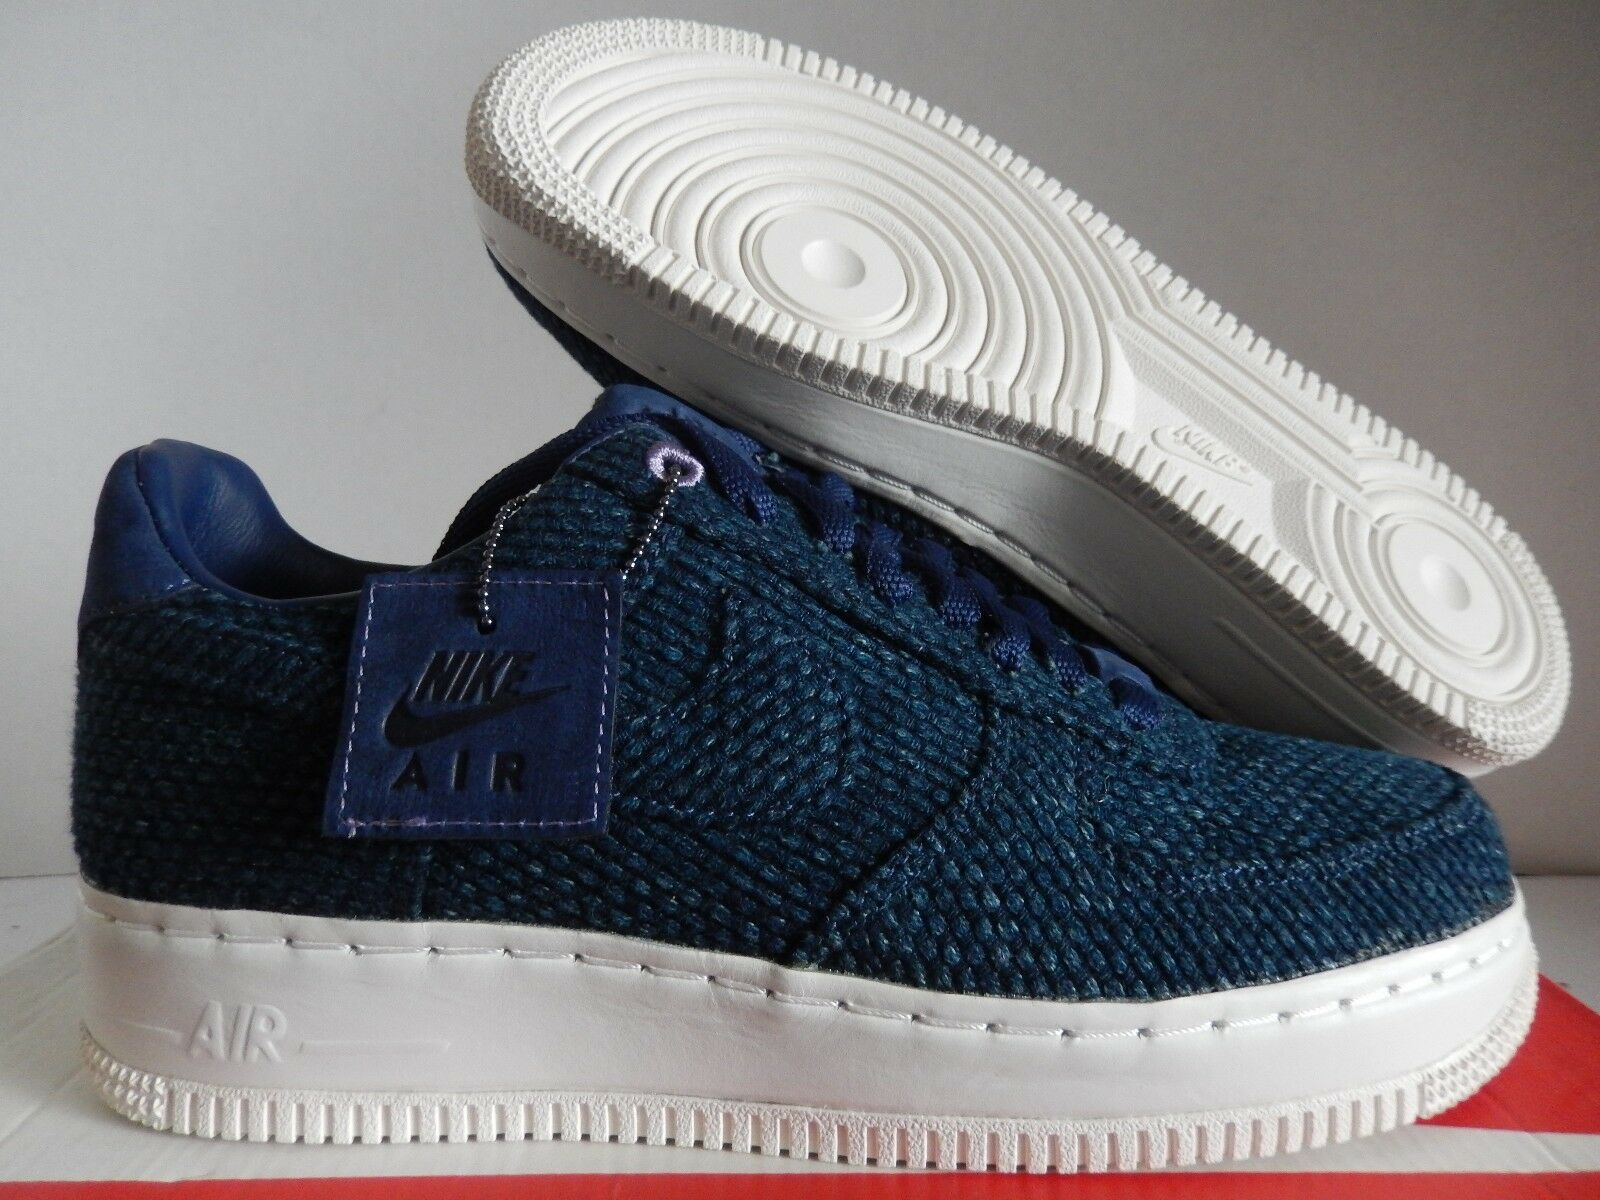 NIKE AIR FORCE 1 LOW AIZOME SASHIKO JAPAN NAVY BLUE SZ 9 RARE!! [AR4670-444]